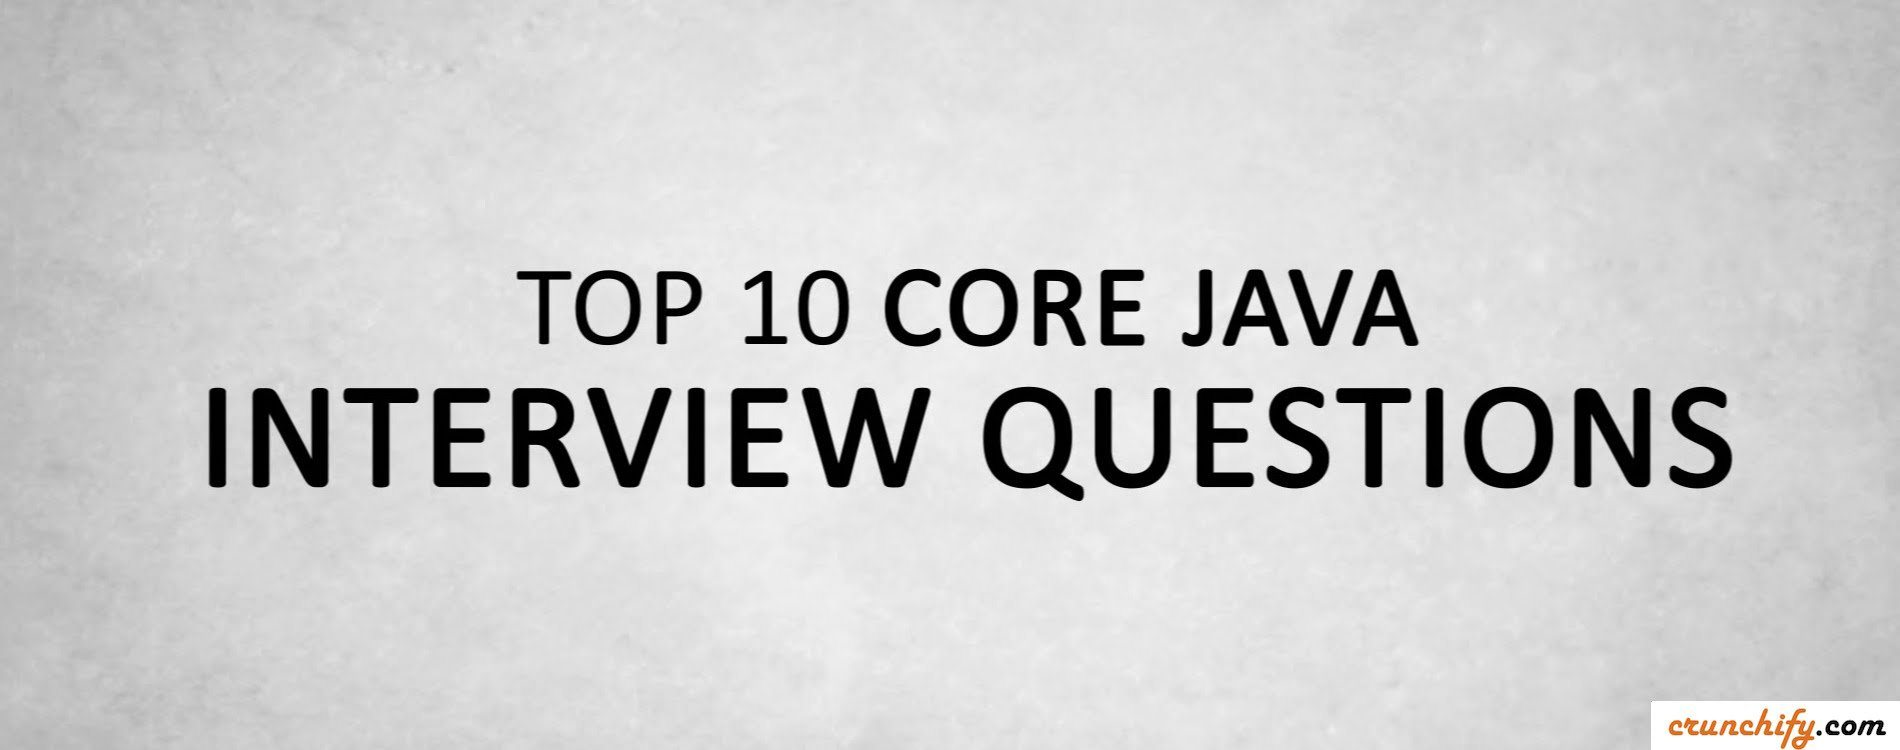 top java interview questions answers must before top 10 java interview questions by crunchify